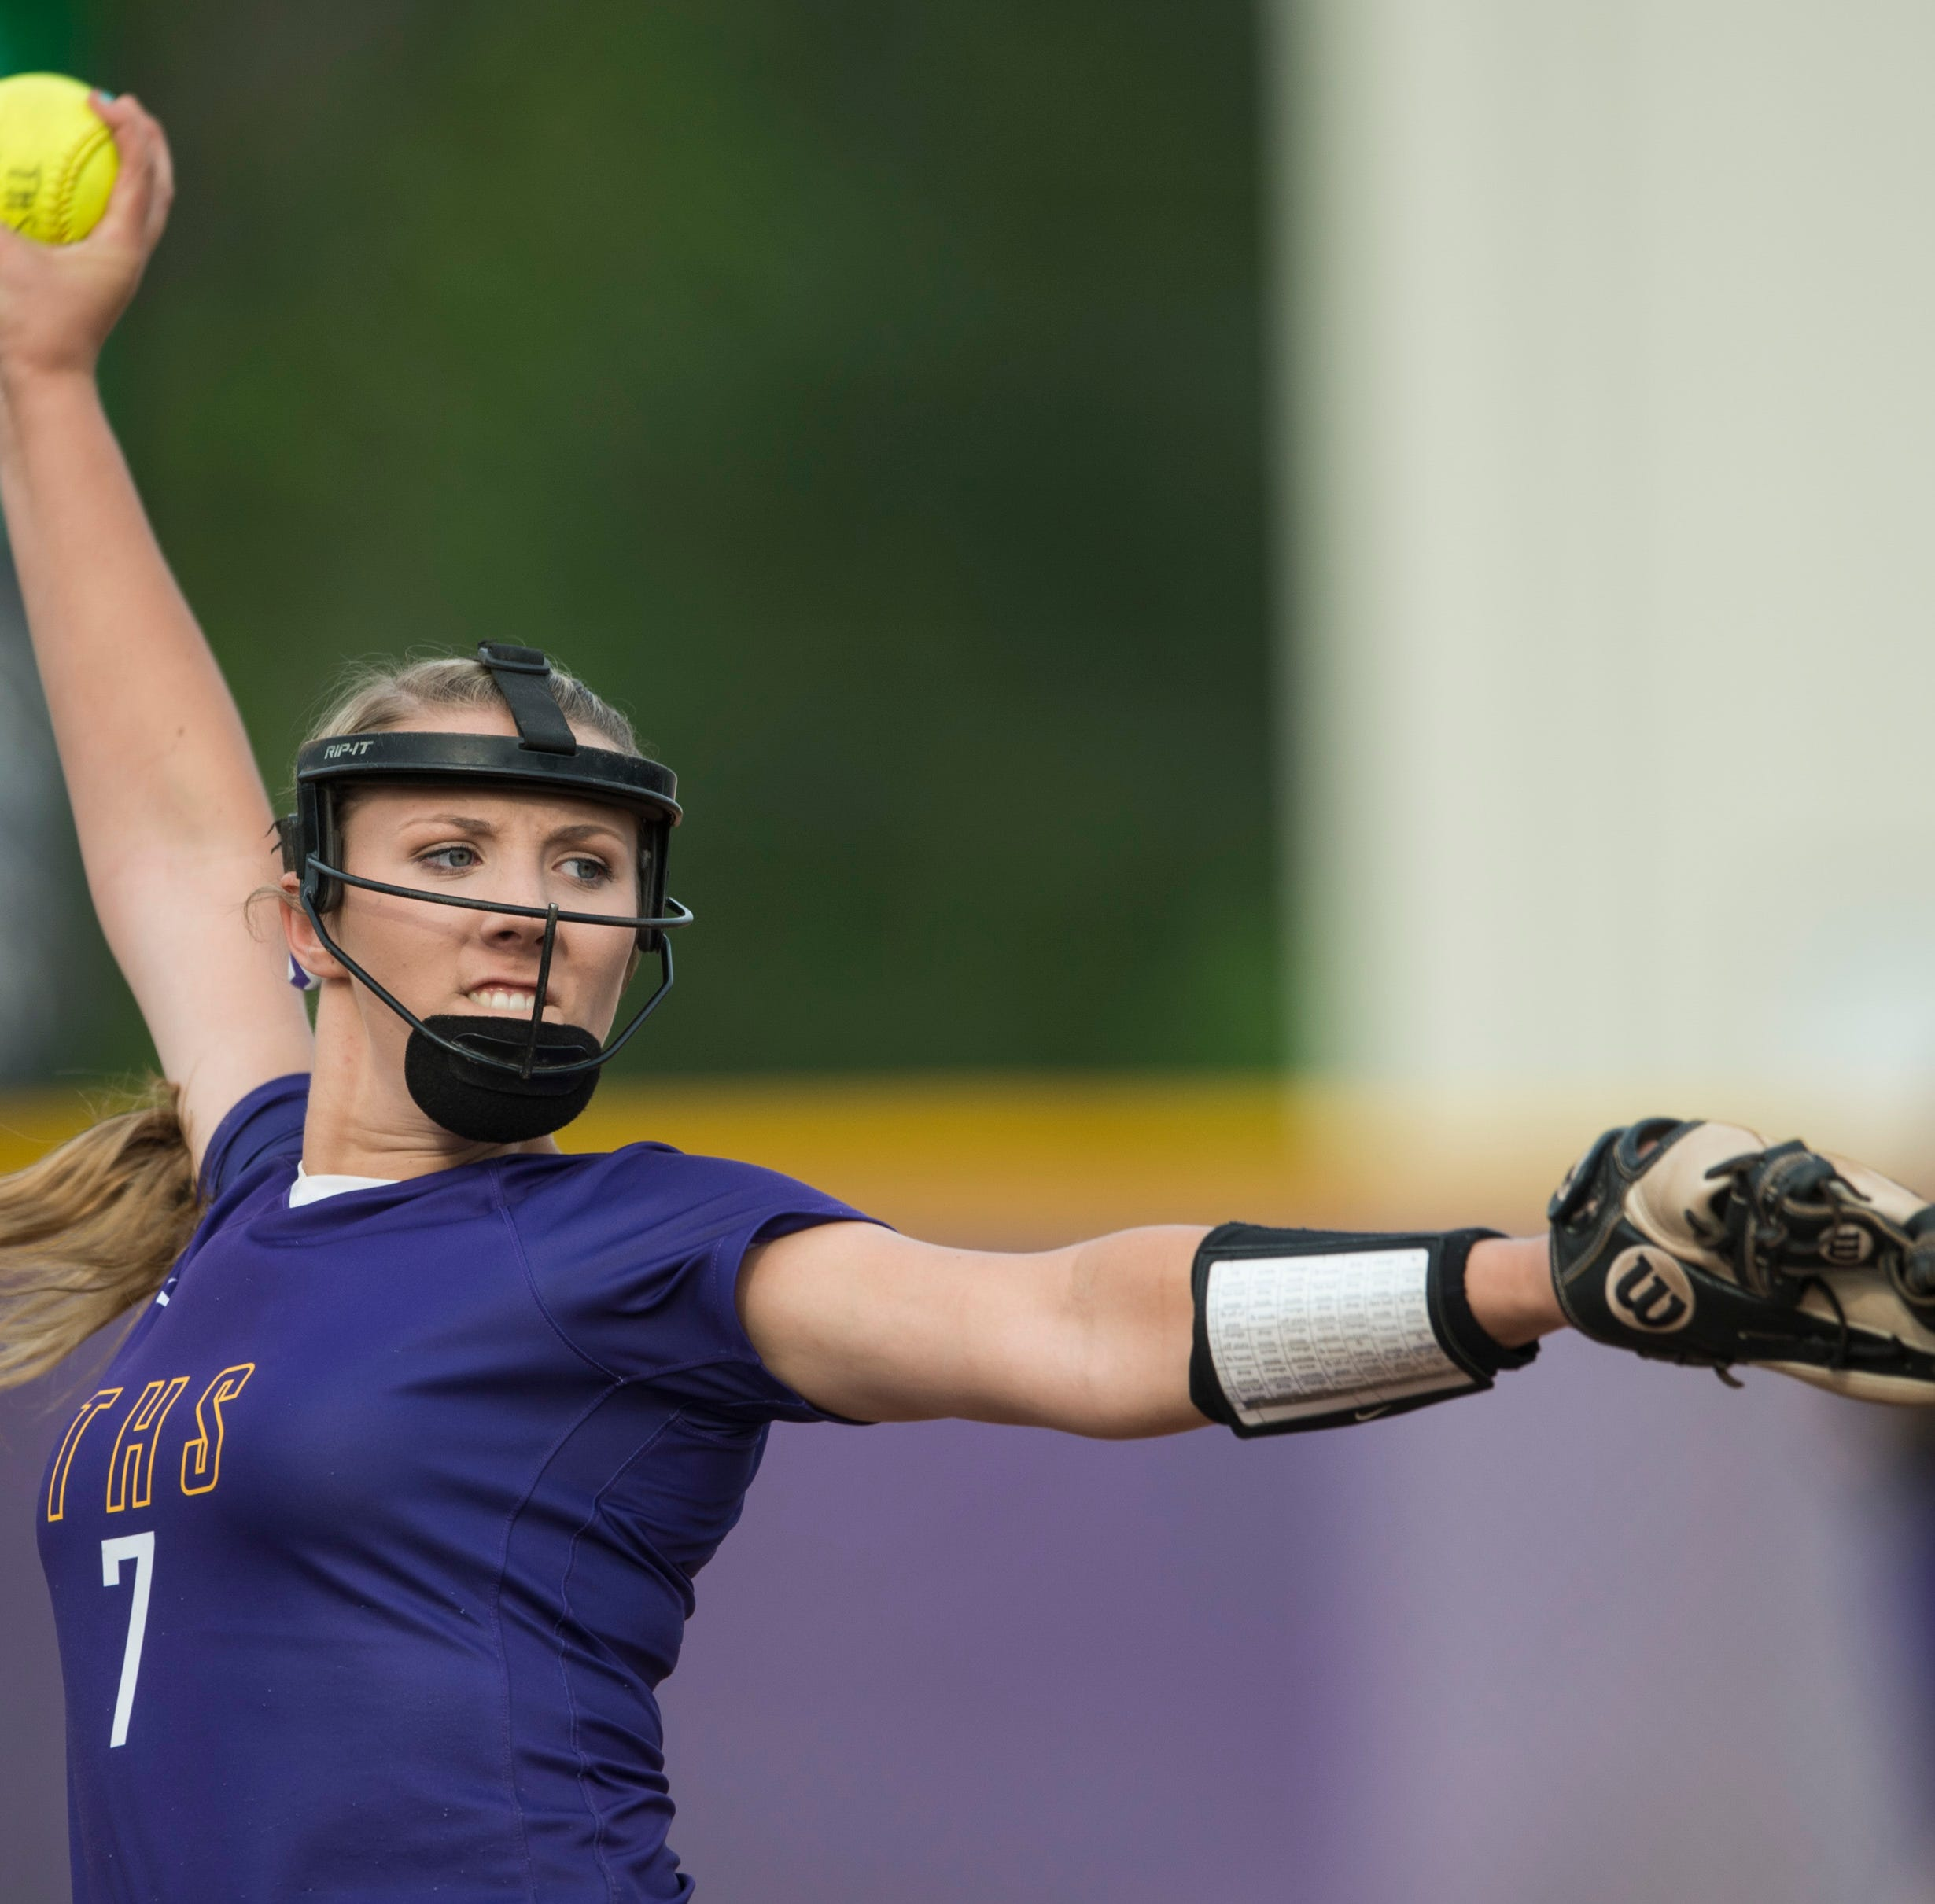 Tallassee's Jordan Walters (7) pitches at Southside Middle School in Tallassee, Ala., on Thursday, April 18, 2019. Prattville Christian defeated Tallassee 12-10.